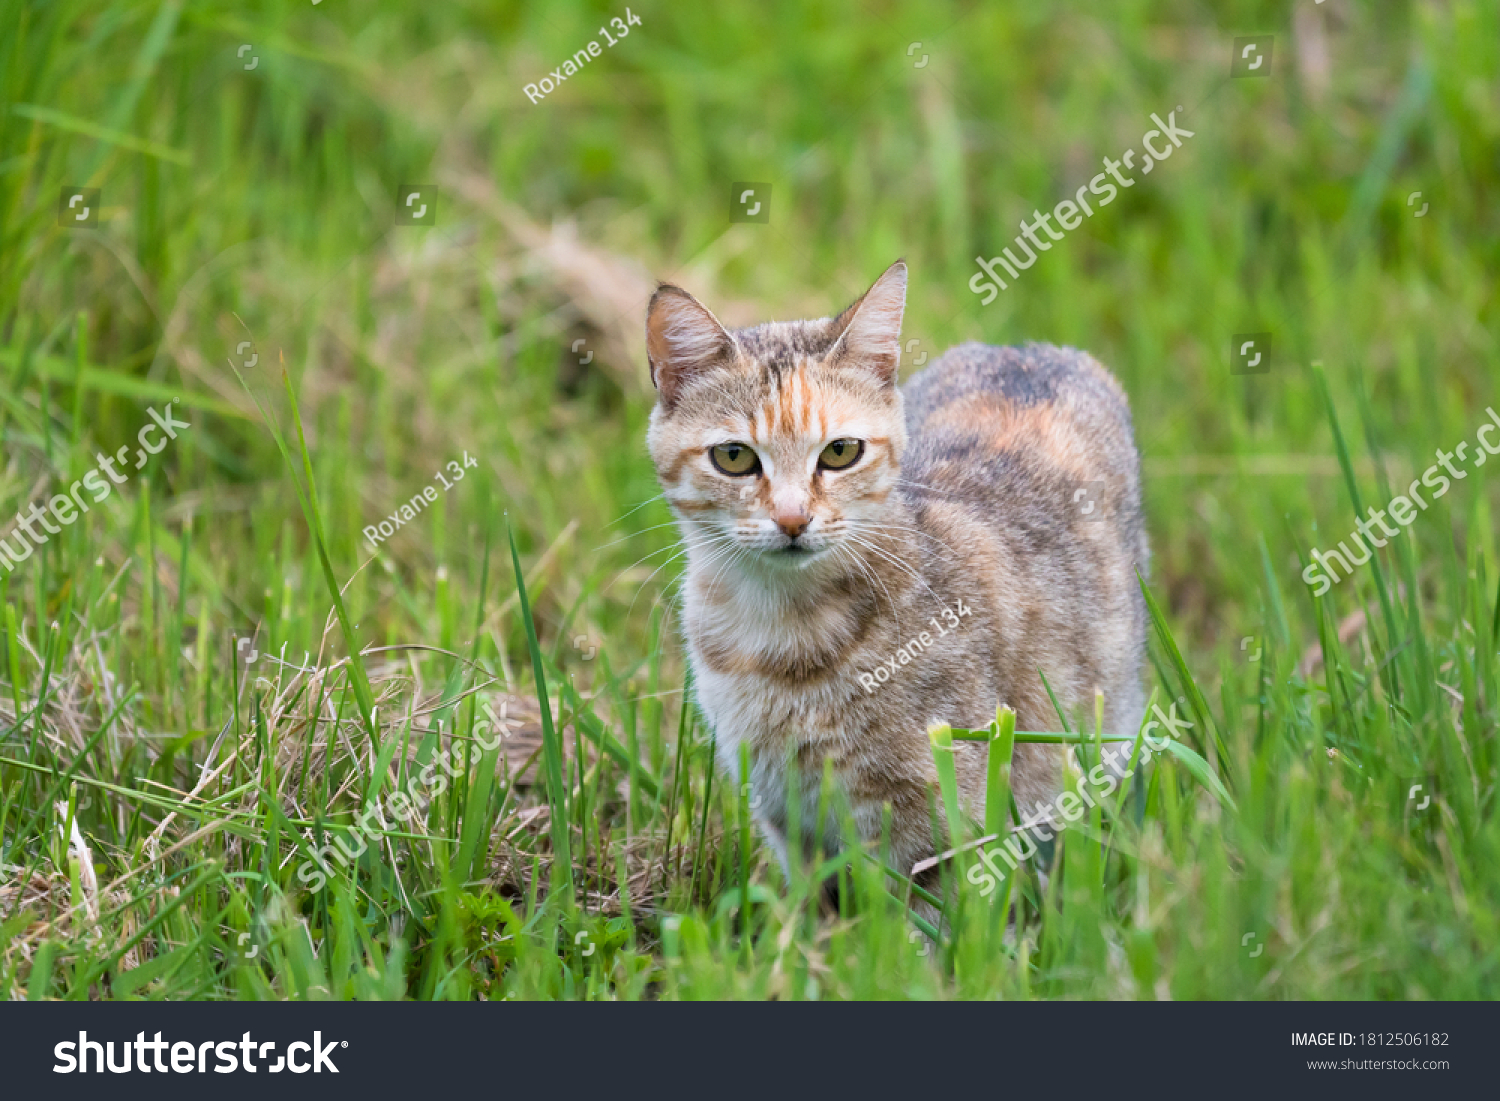 stock-photo-young-wild-feral-cat-in-gree